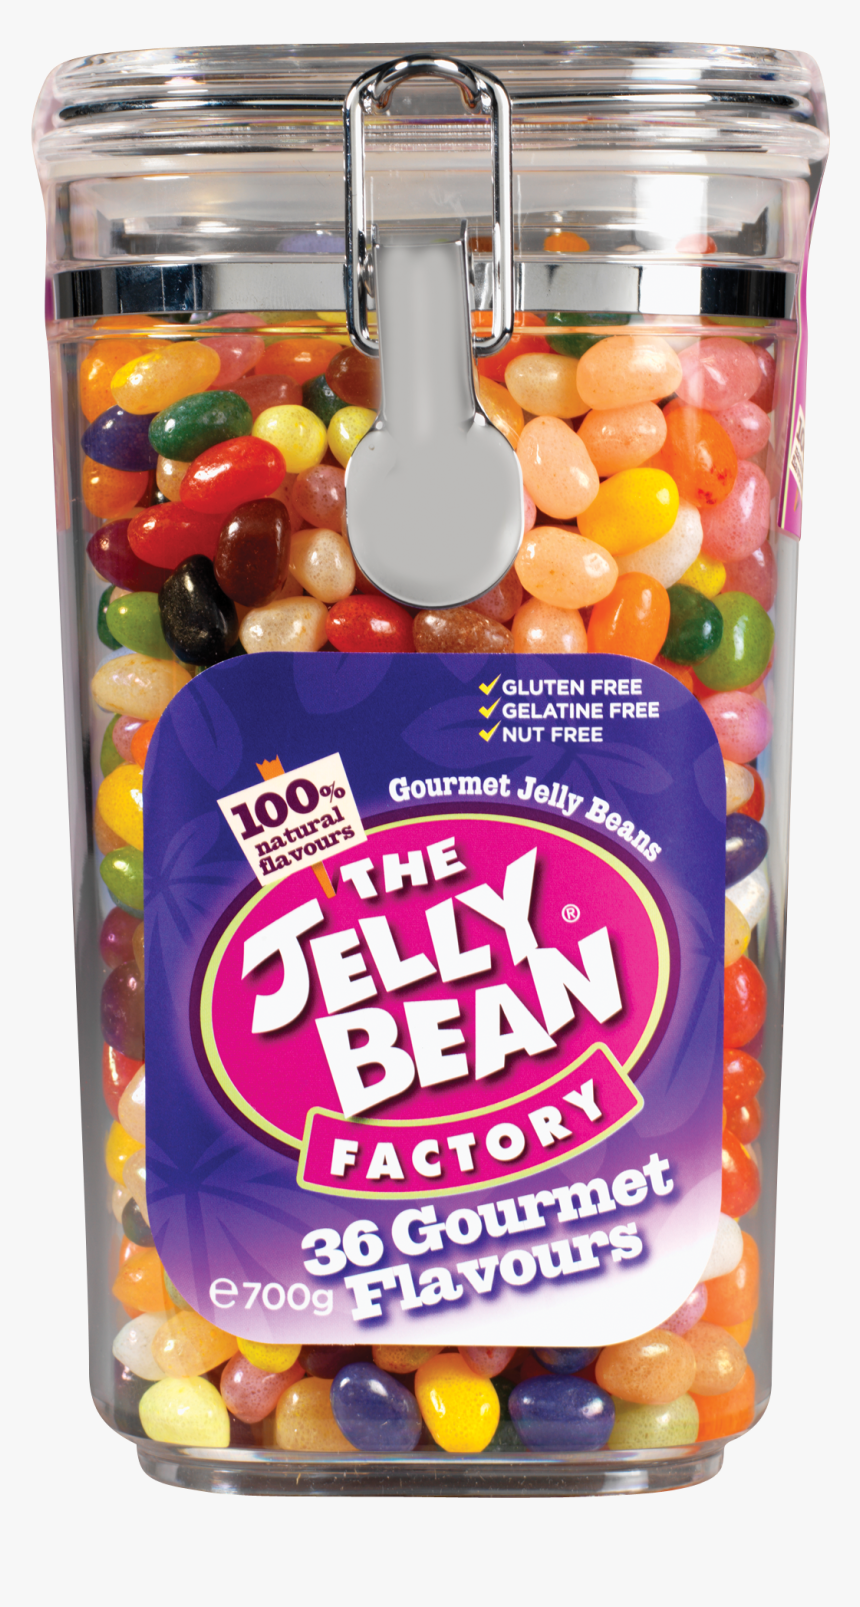 Homepage The Factory G - Jelly Bean Factory Jelly Beans, HD Png Download, Free Download